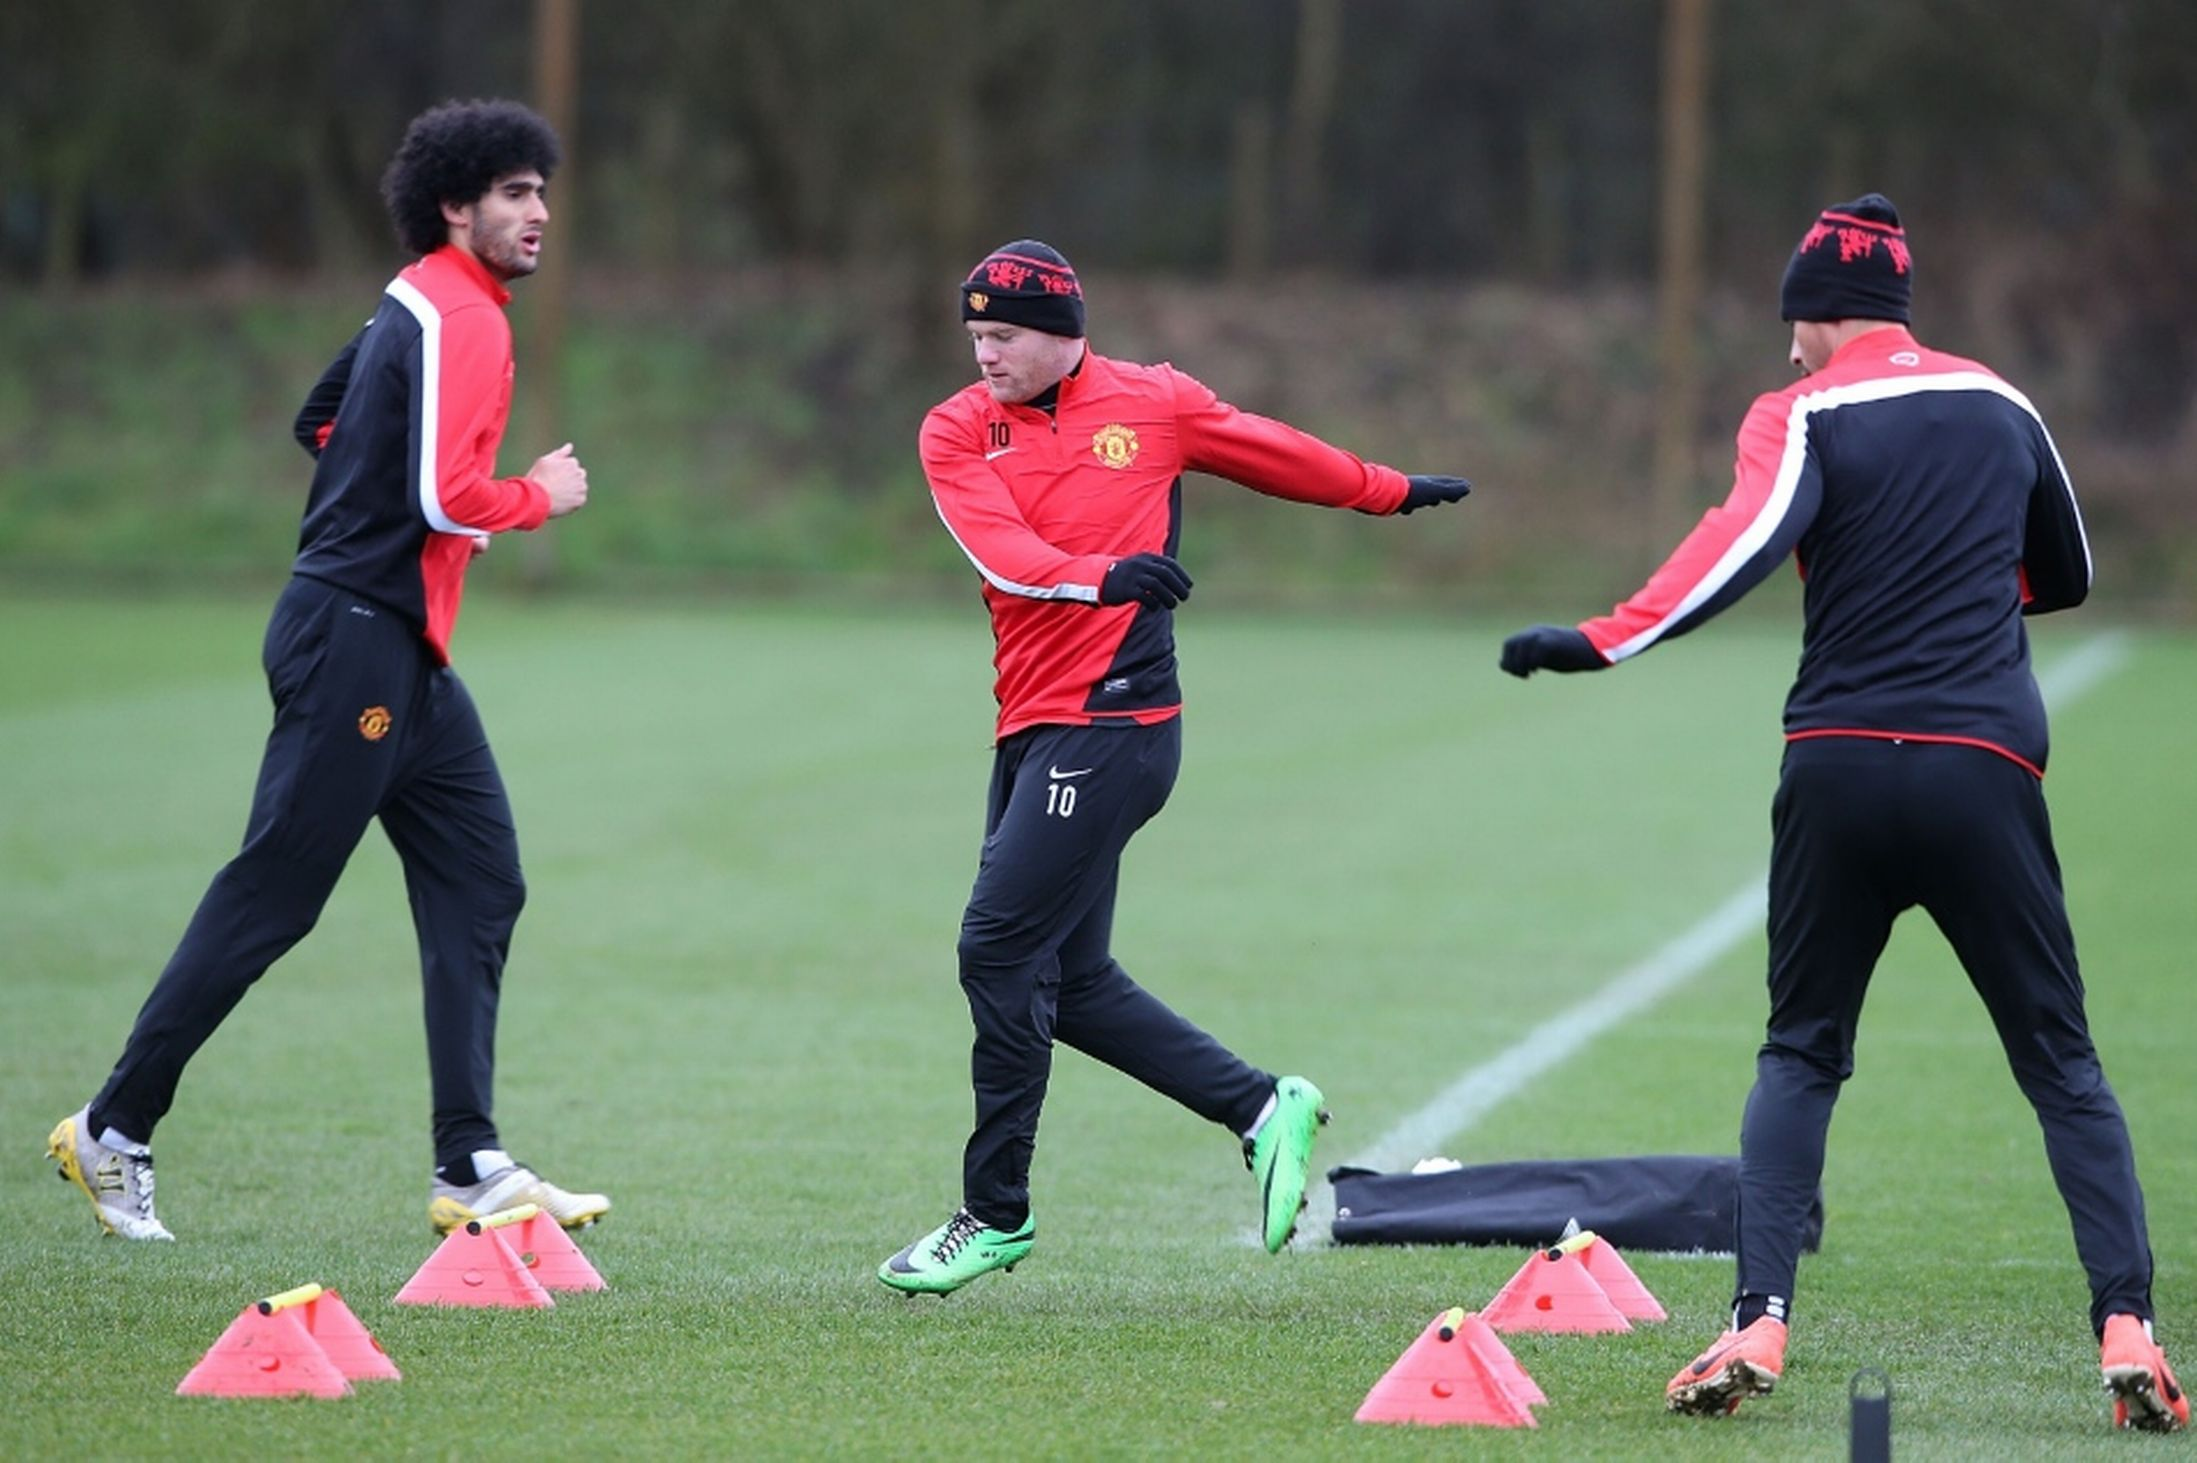 Manchester-United-Training-Session-3178909